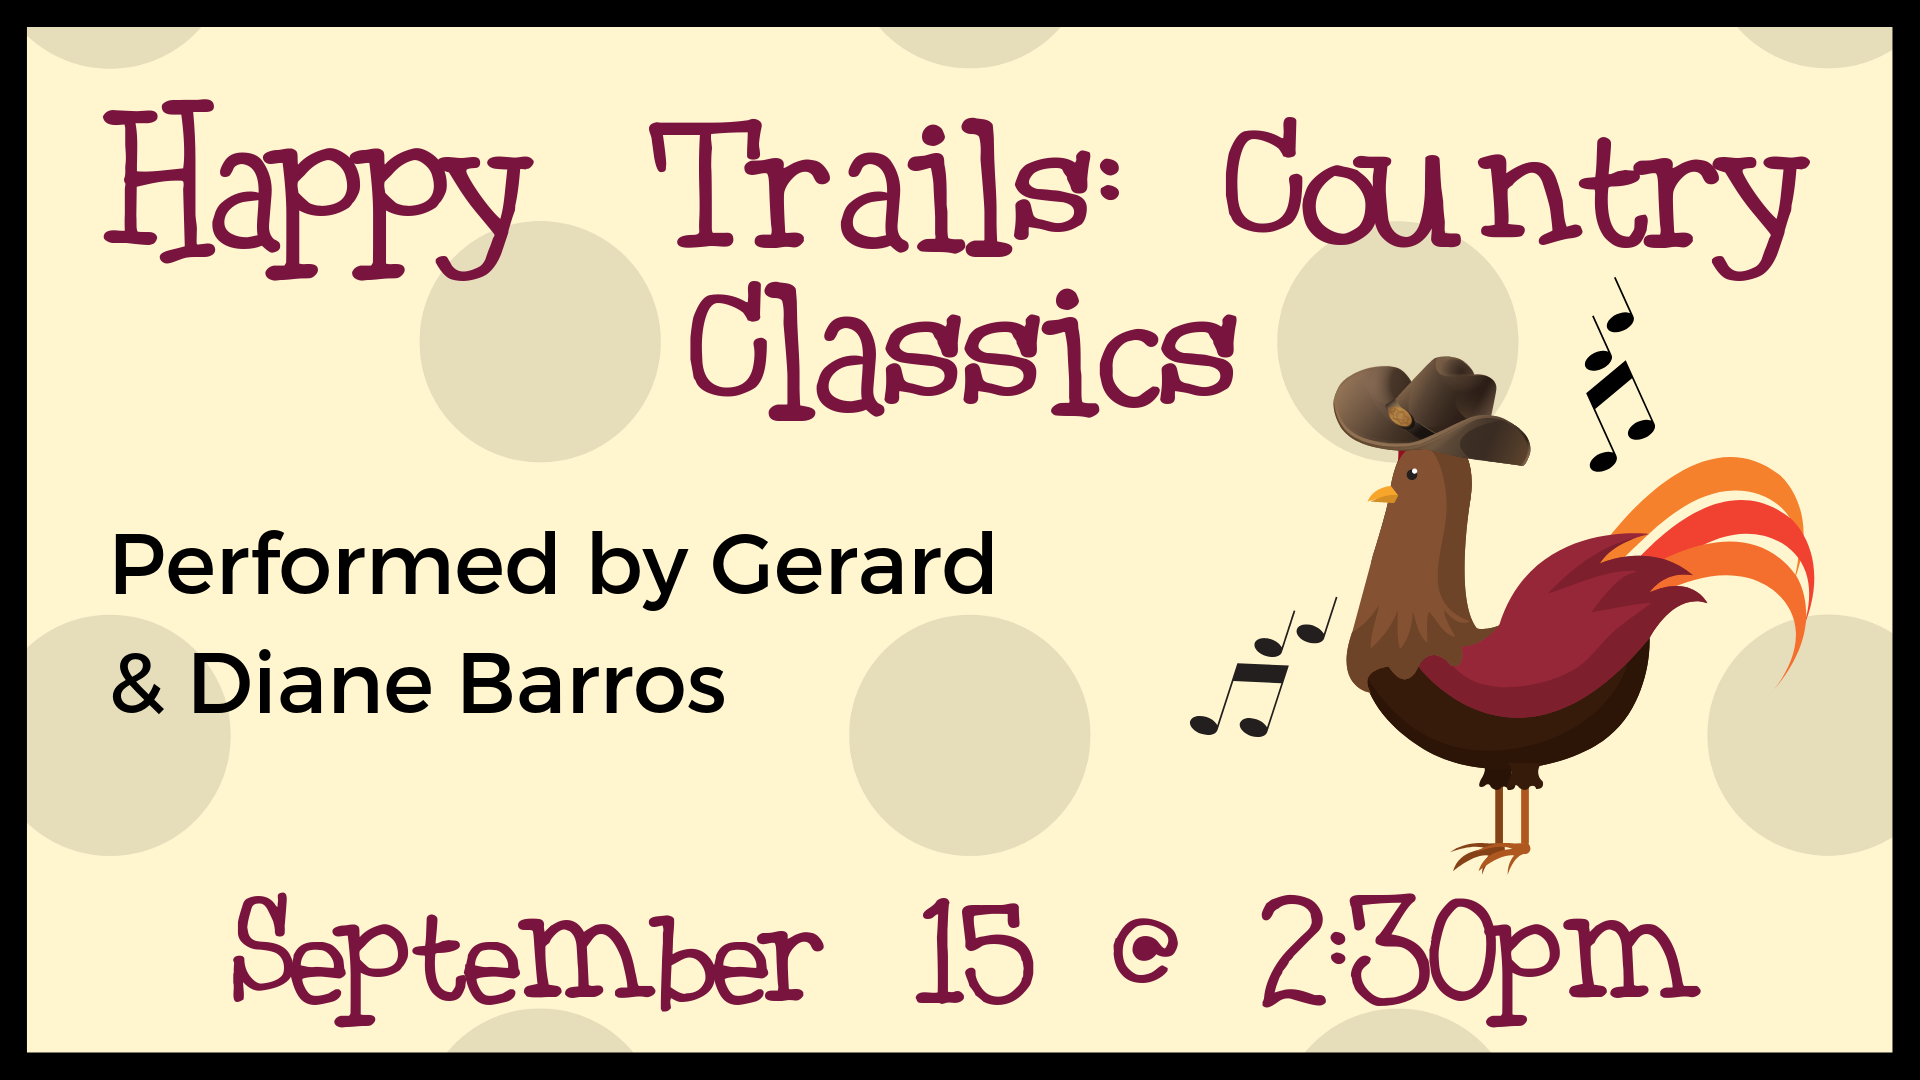 Happy Trails: Country Classics